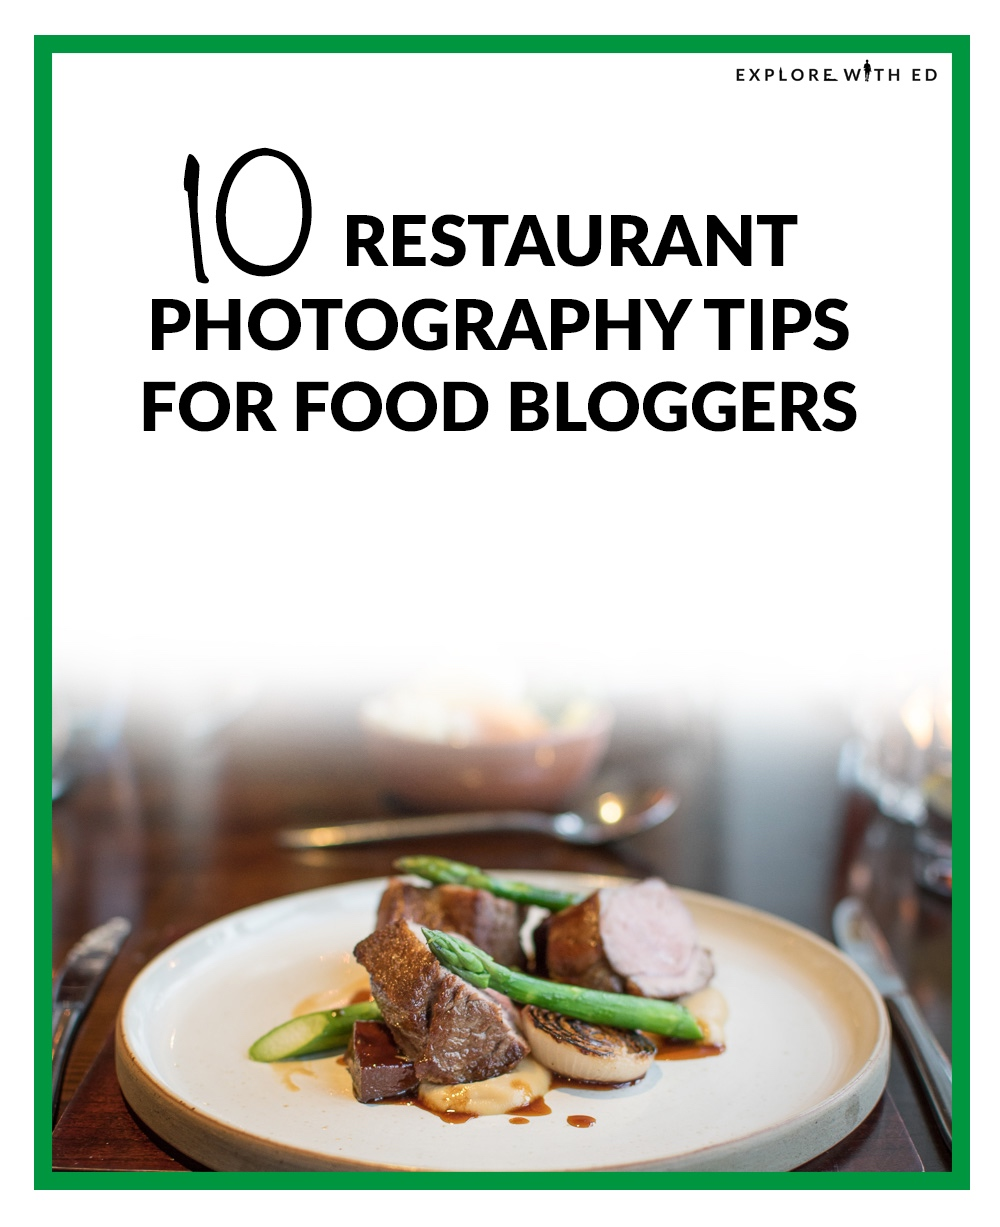 Restaurant Photography Tips for Food Bloggers